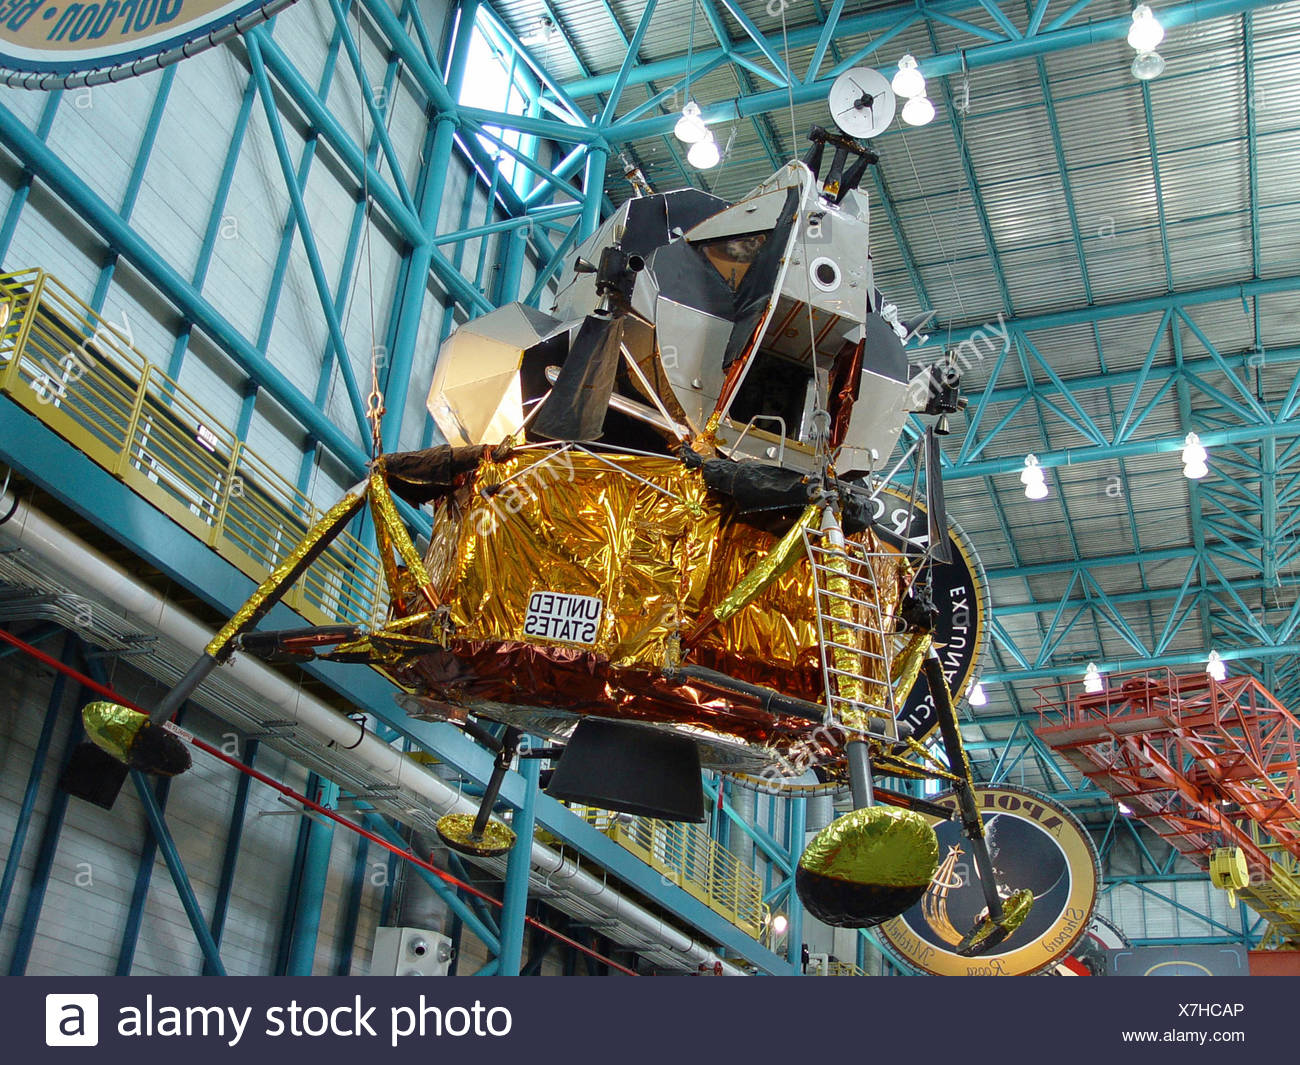 Apollo Saturn V cape Canaveral centre cover Florida Halle hang inside Kennedy Space centre LM9 lunar modul - Stock Image